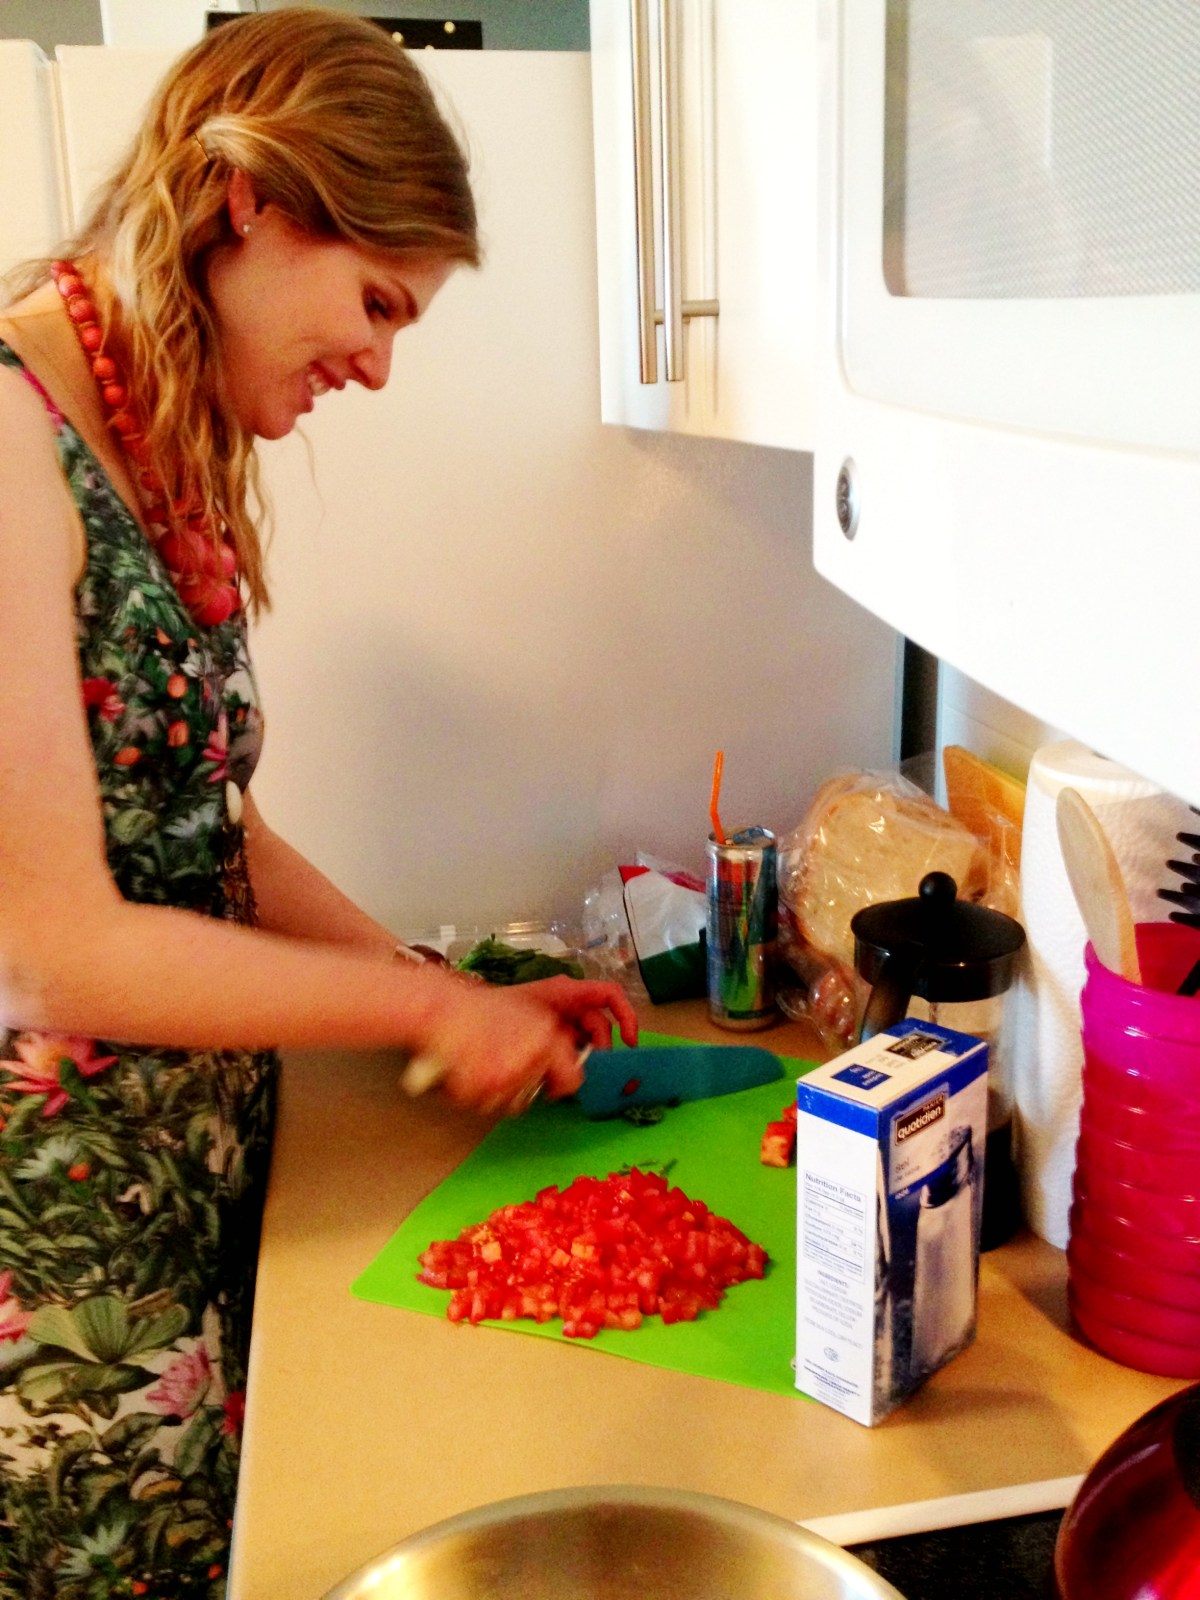 Erin dicing tomatoes.